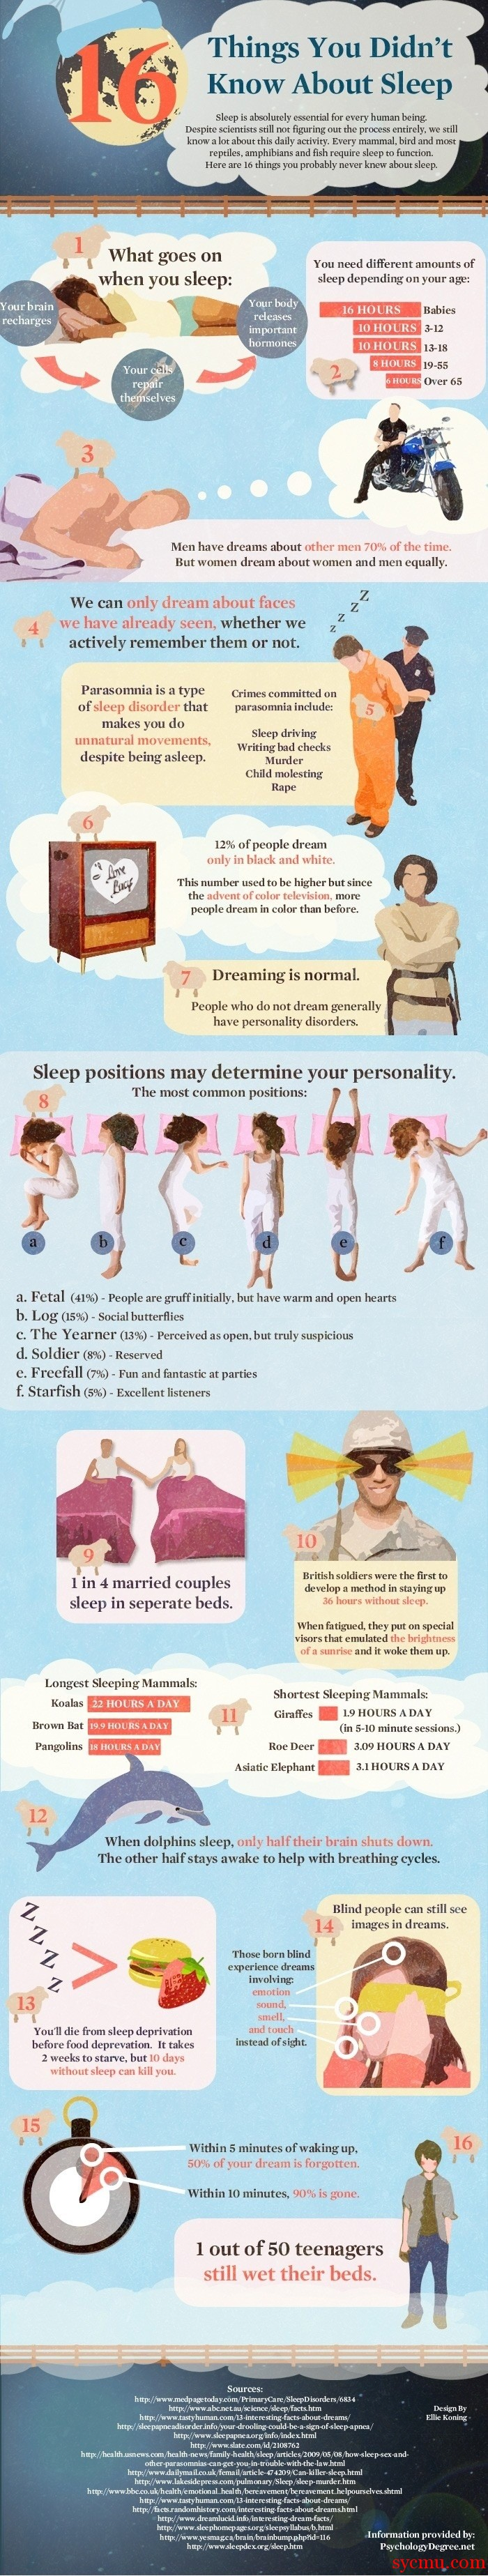 facts about sleep you don't know